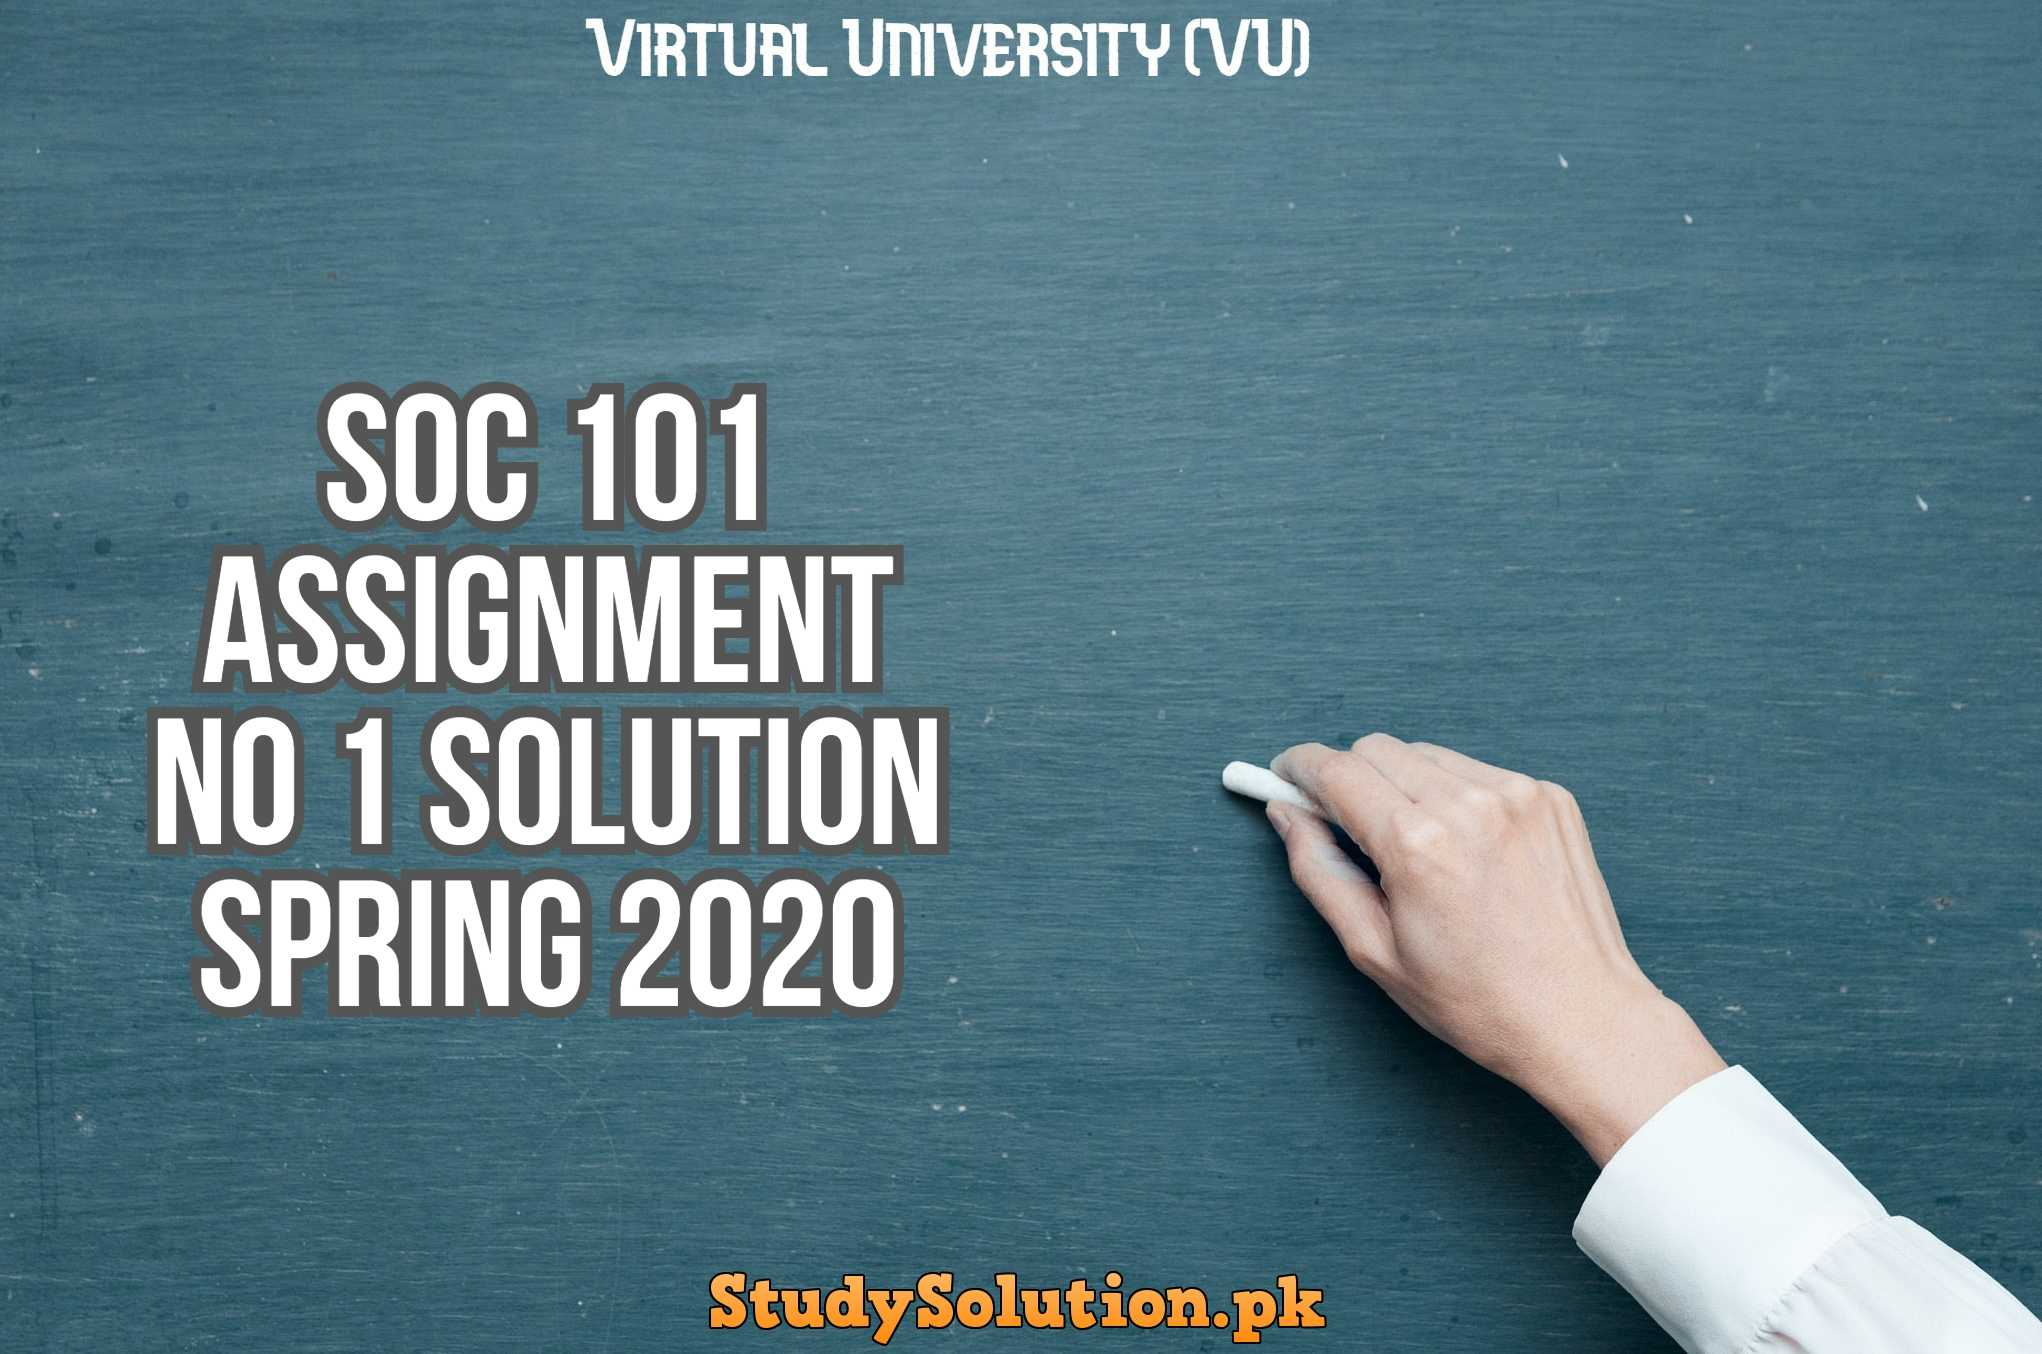 SOC 101 Assignment No 1 Solution Spring 2020